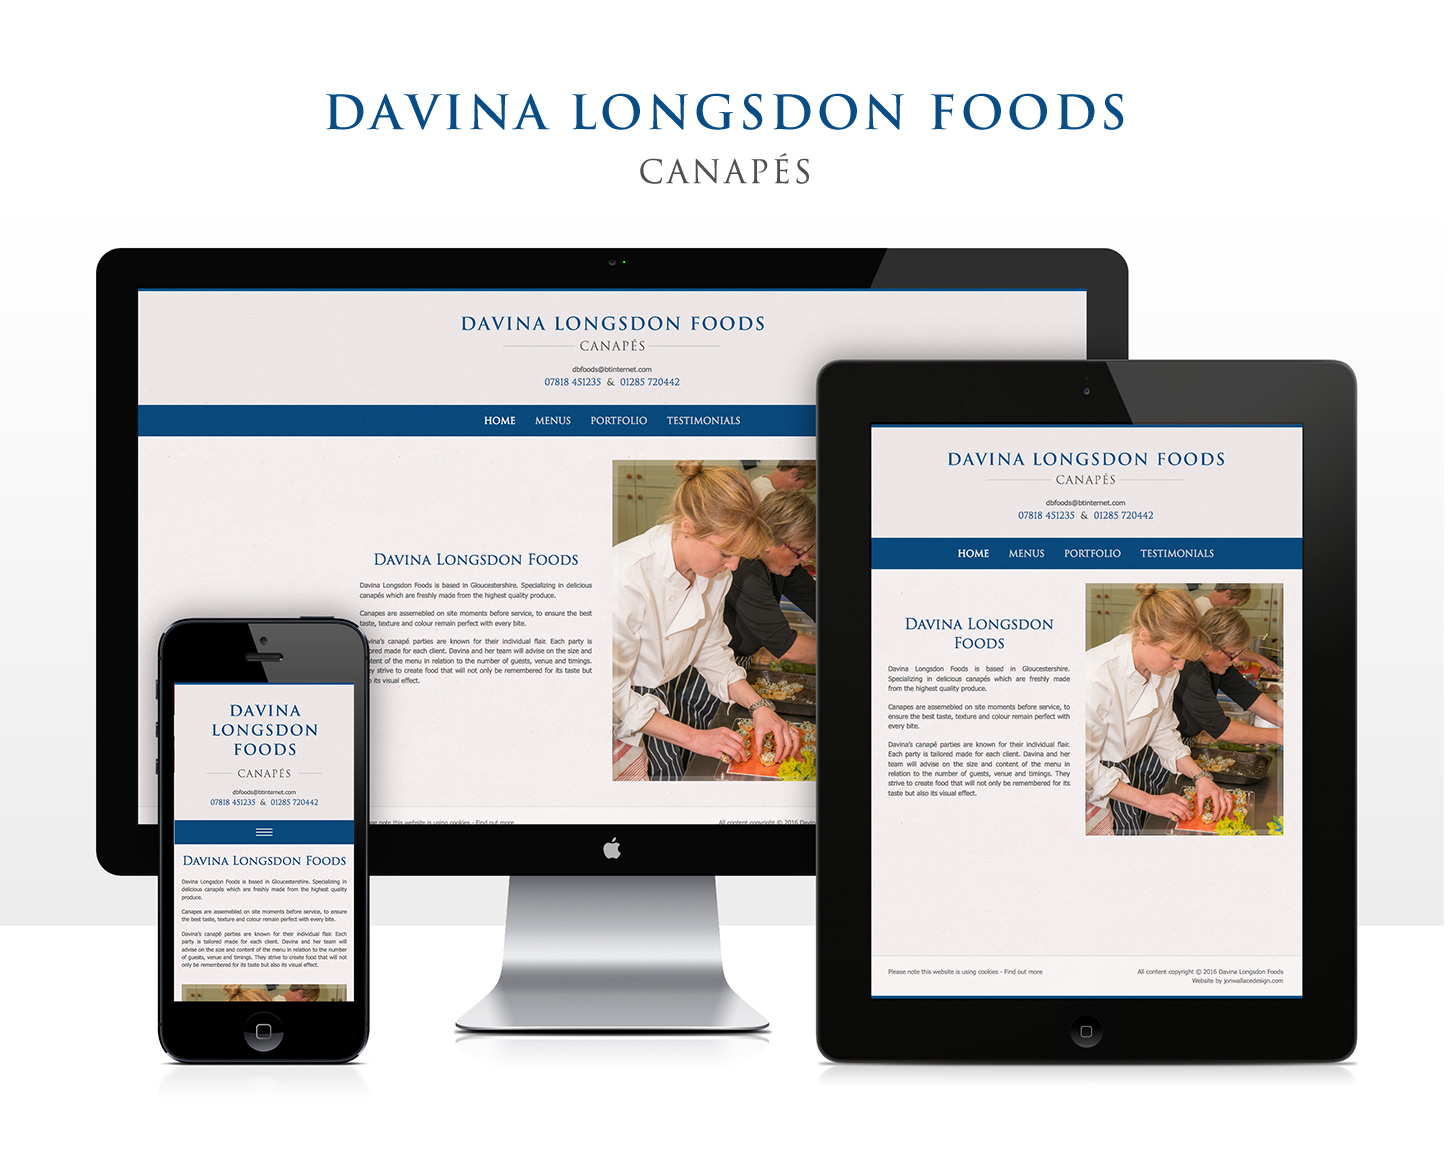 Davina Longsdon Foods website